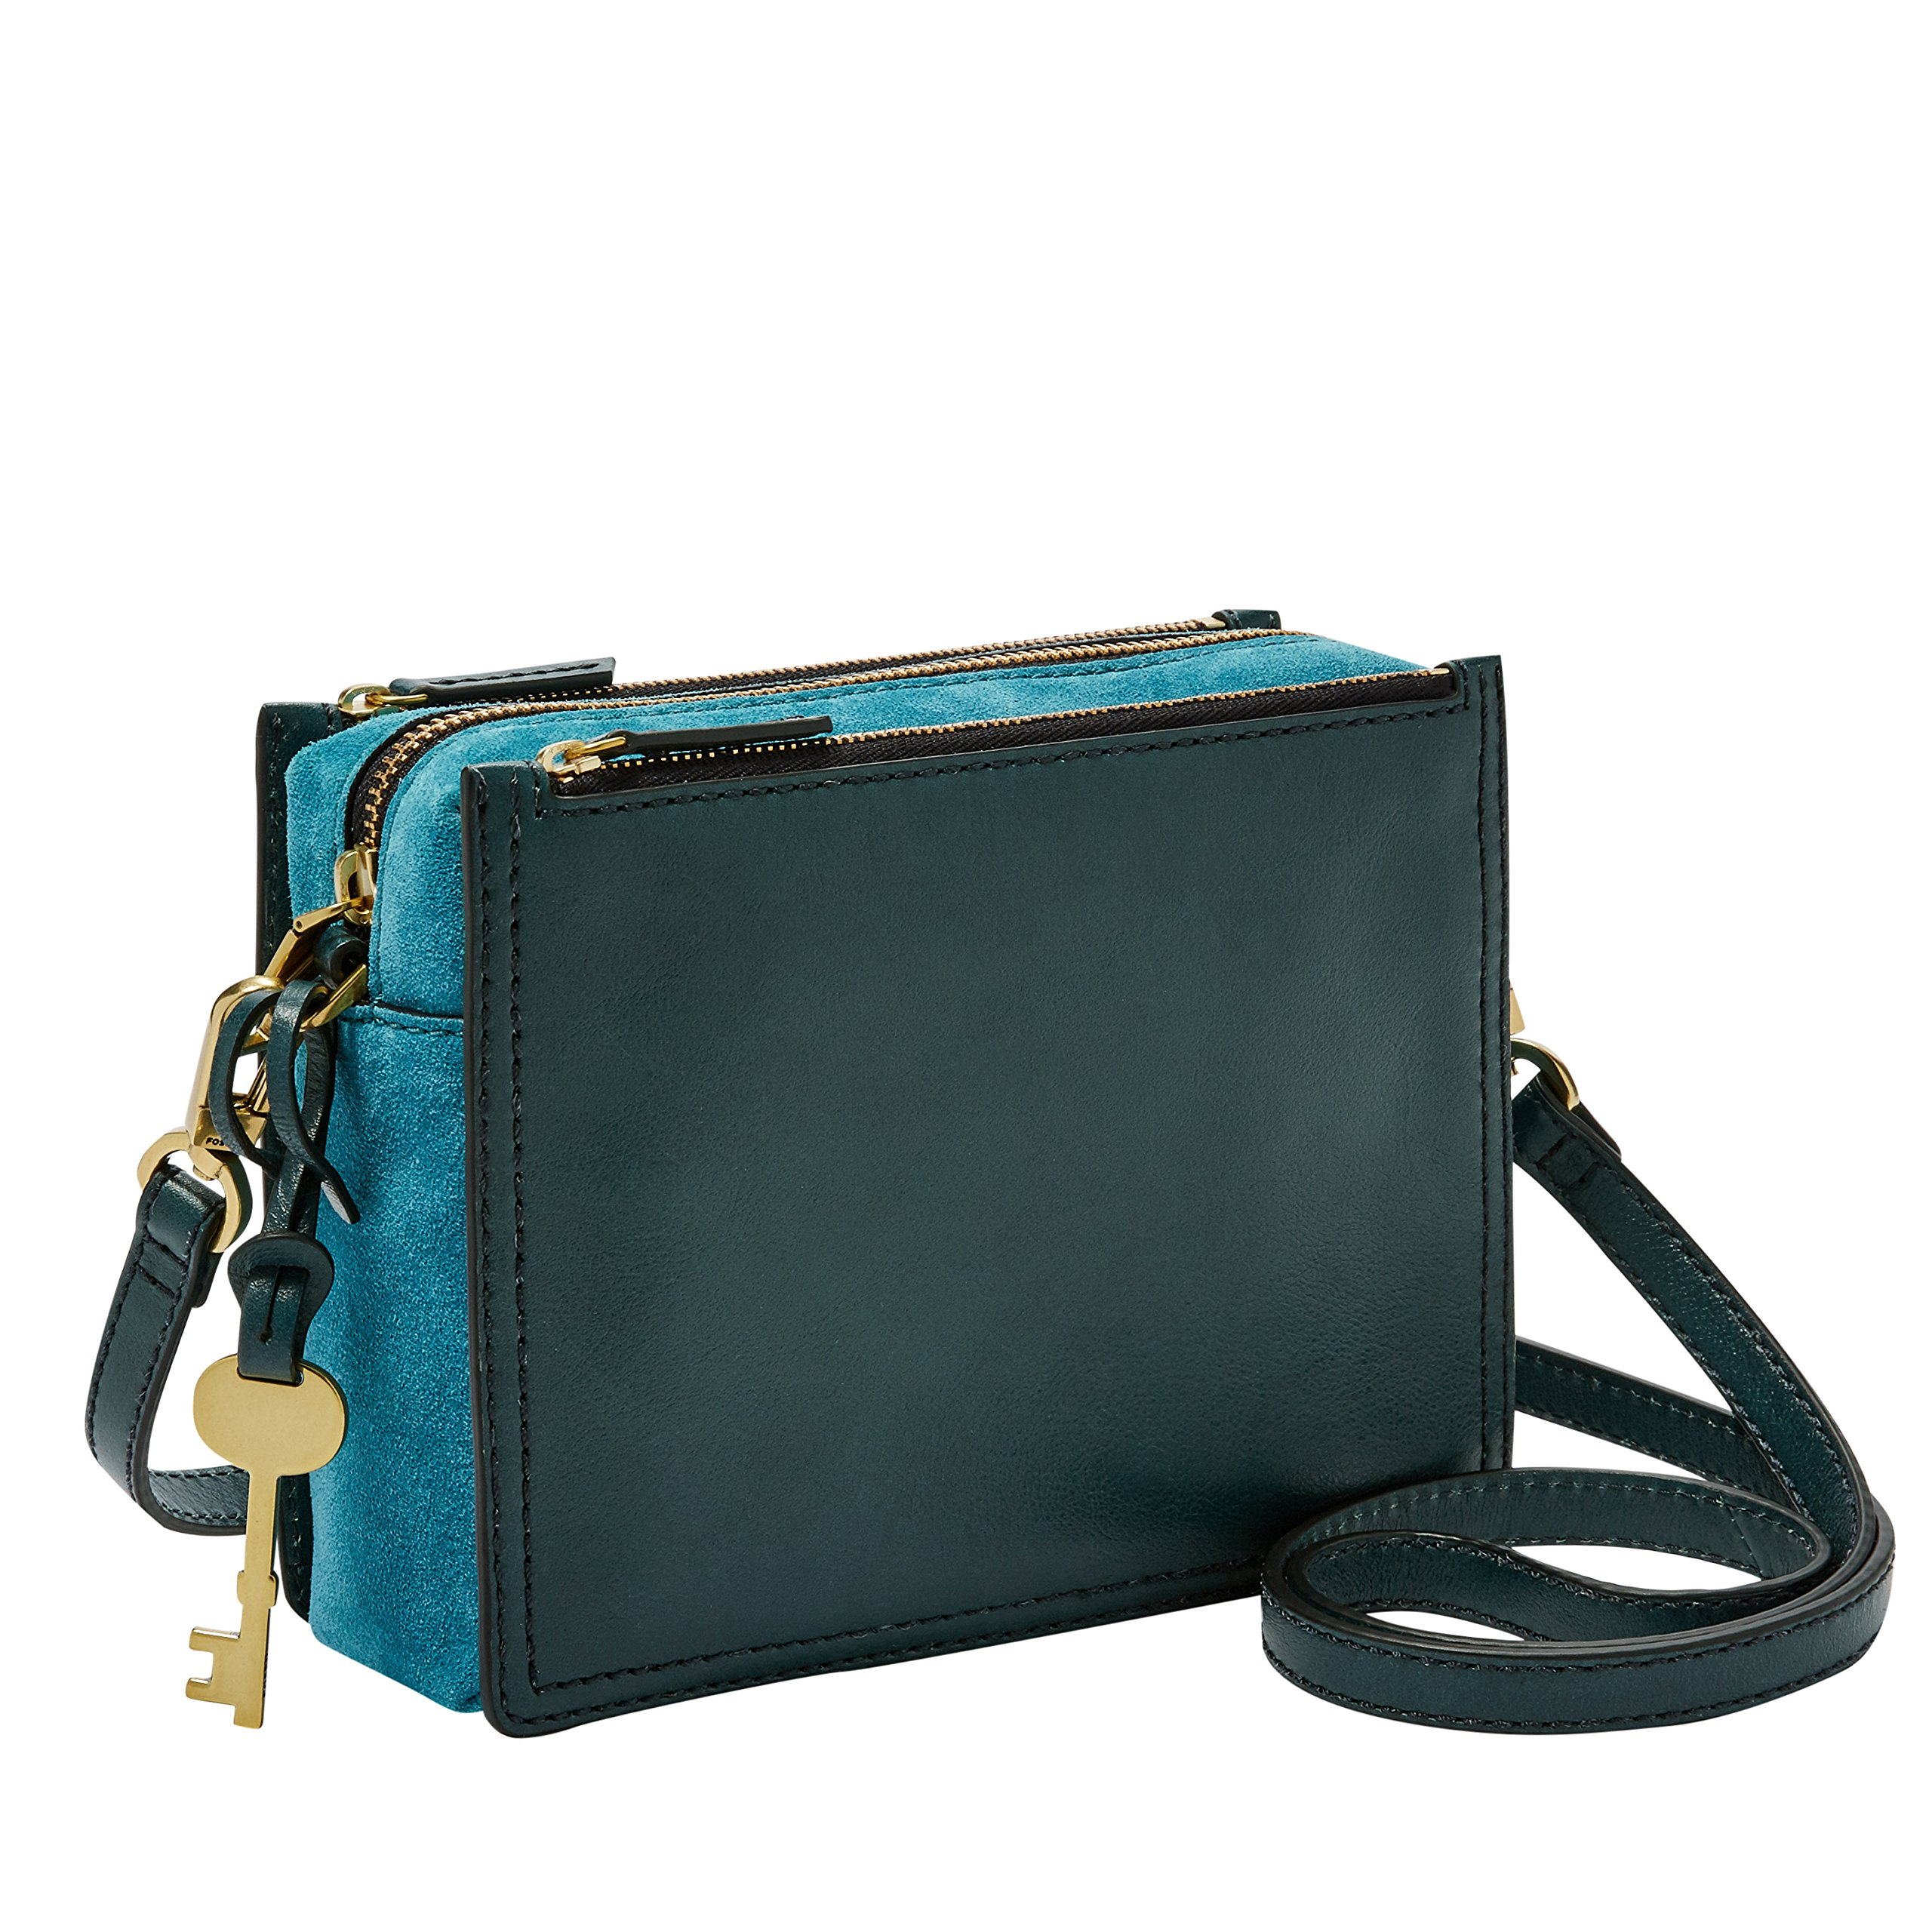 Fossil Campbell Crossbody Bag, indian teal